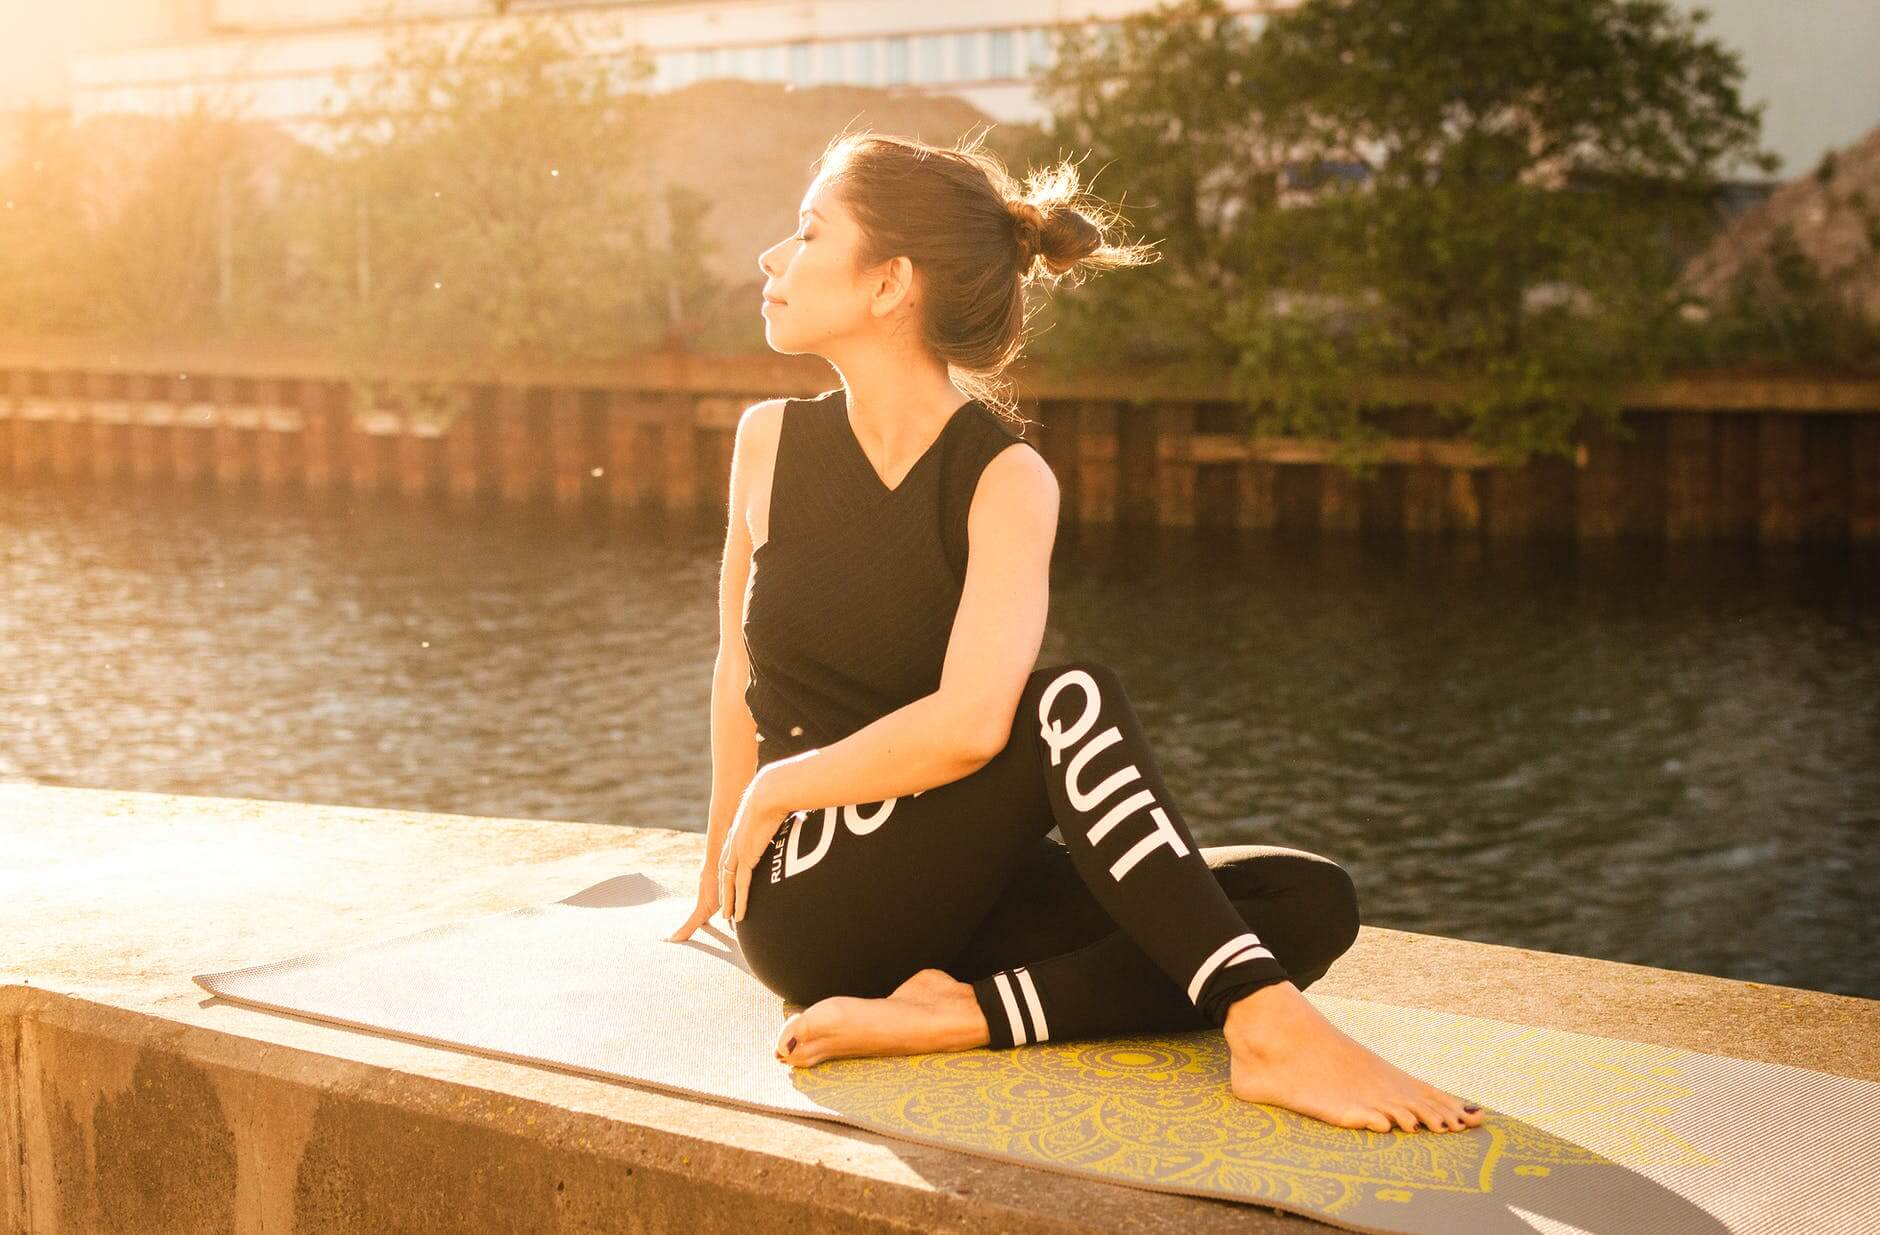 self-improvement-quotes-tips-woman-wearing-black-fitness-outfit-performs-yoga-near-body-of-water